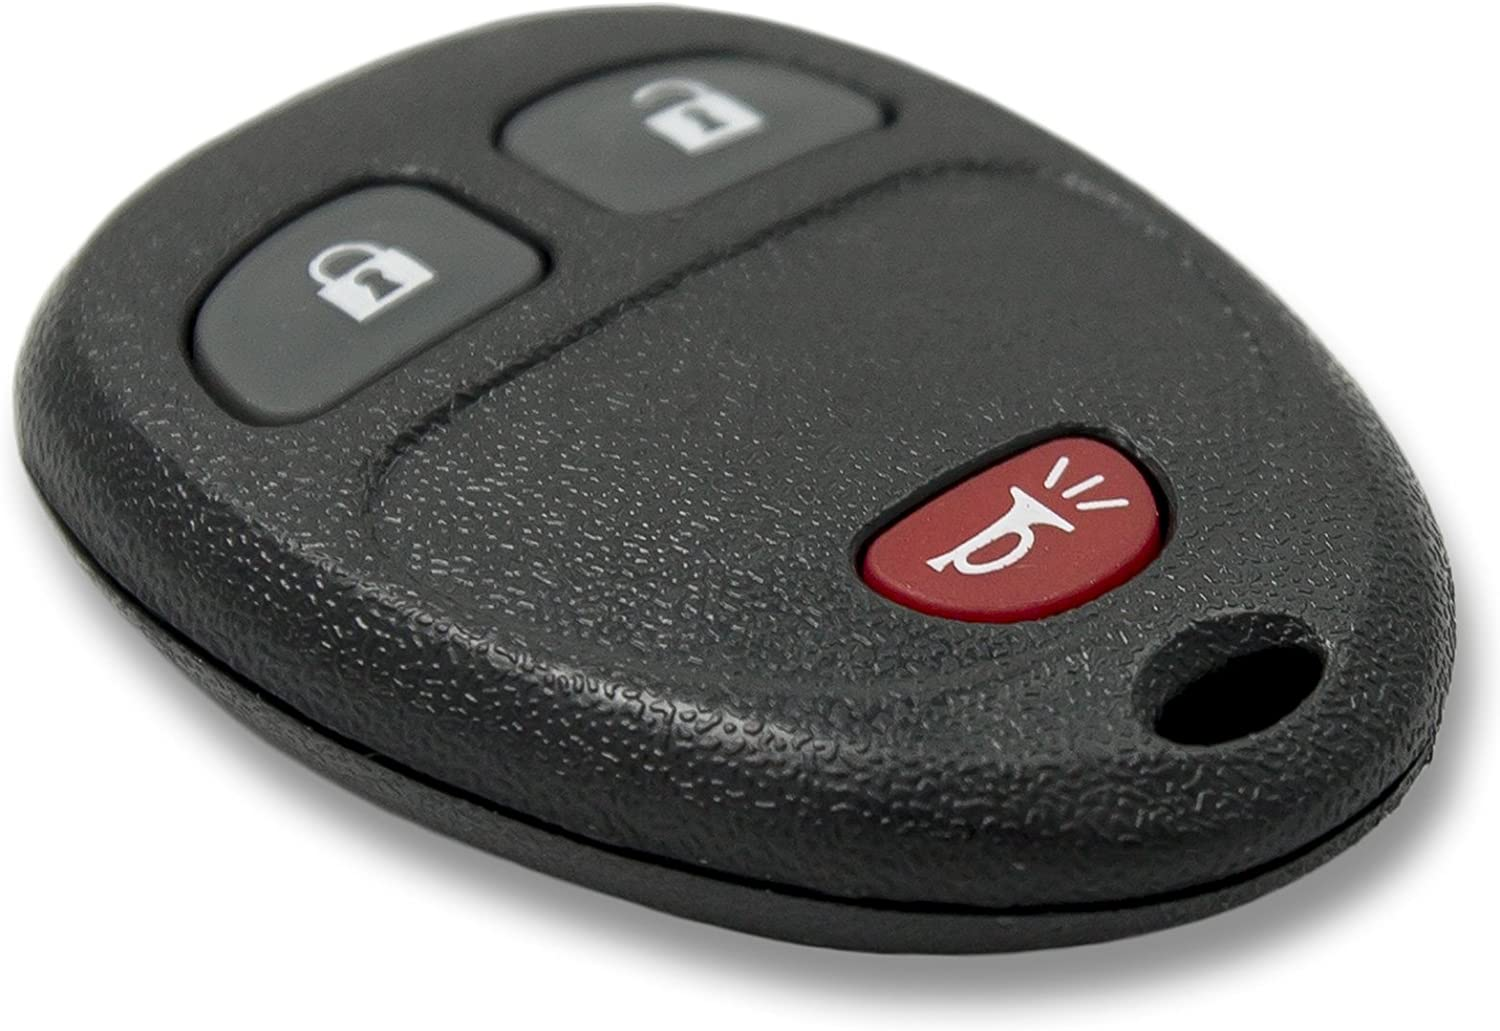 BestKeys New Keyless Entry 3 Button Remote Car Key Fob Replacement GM Part 15913420